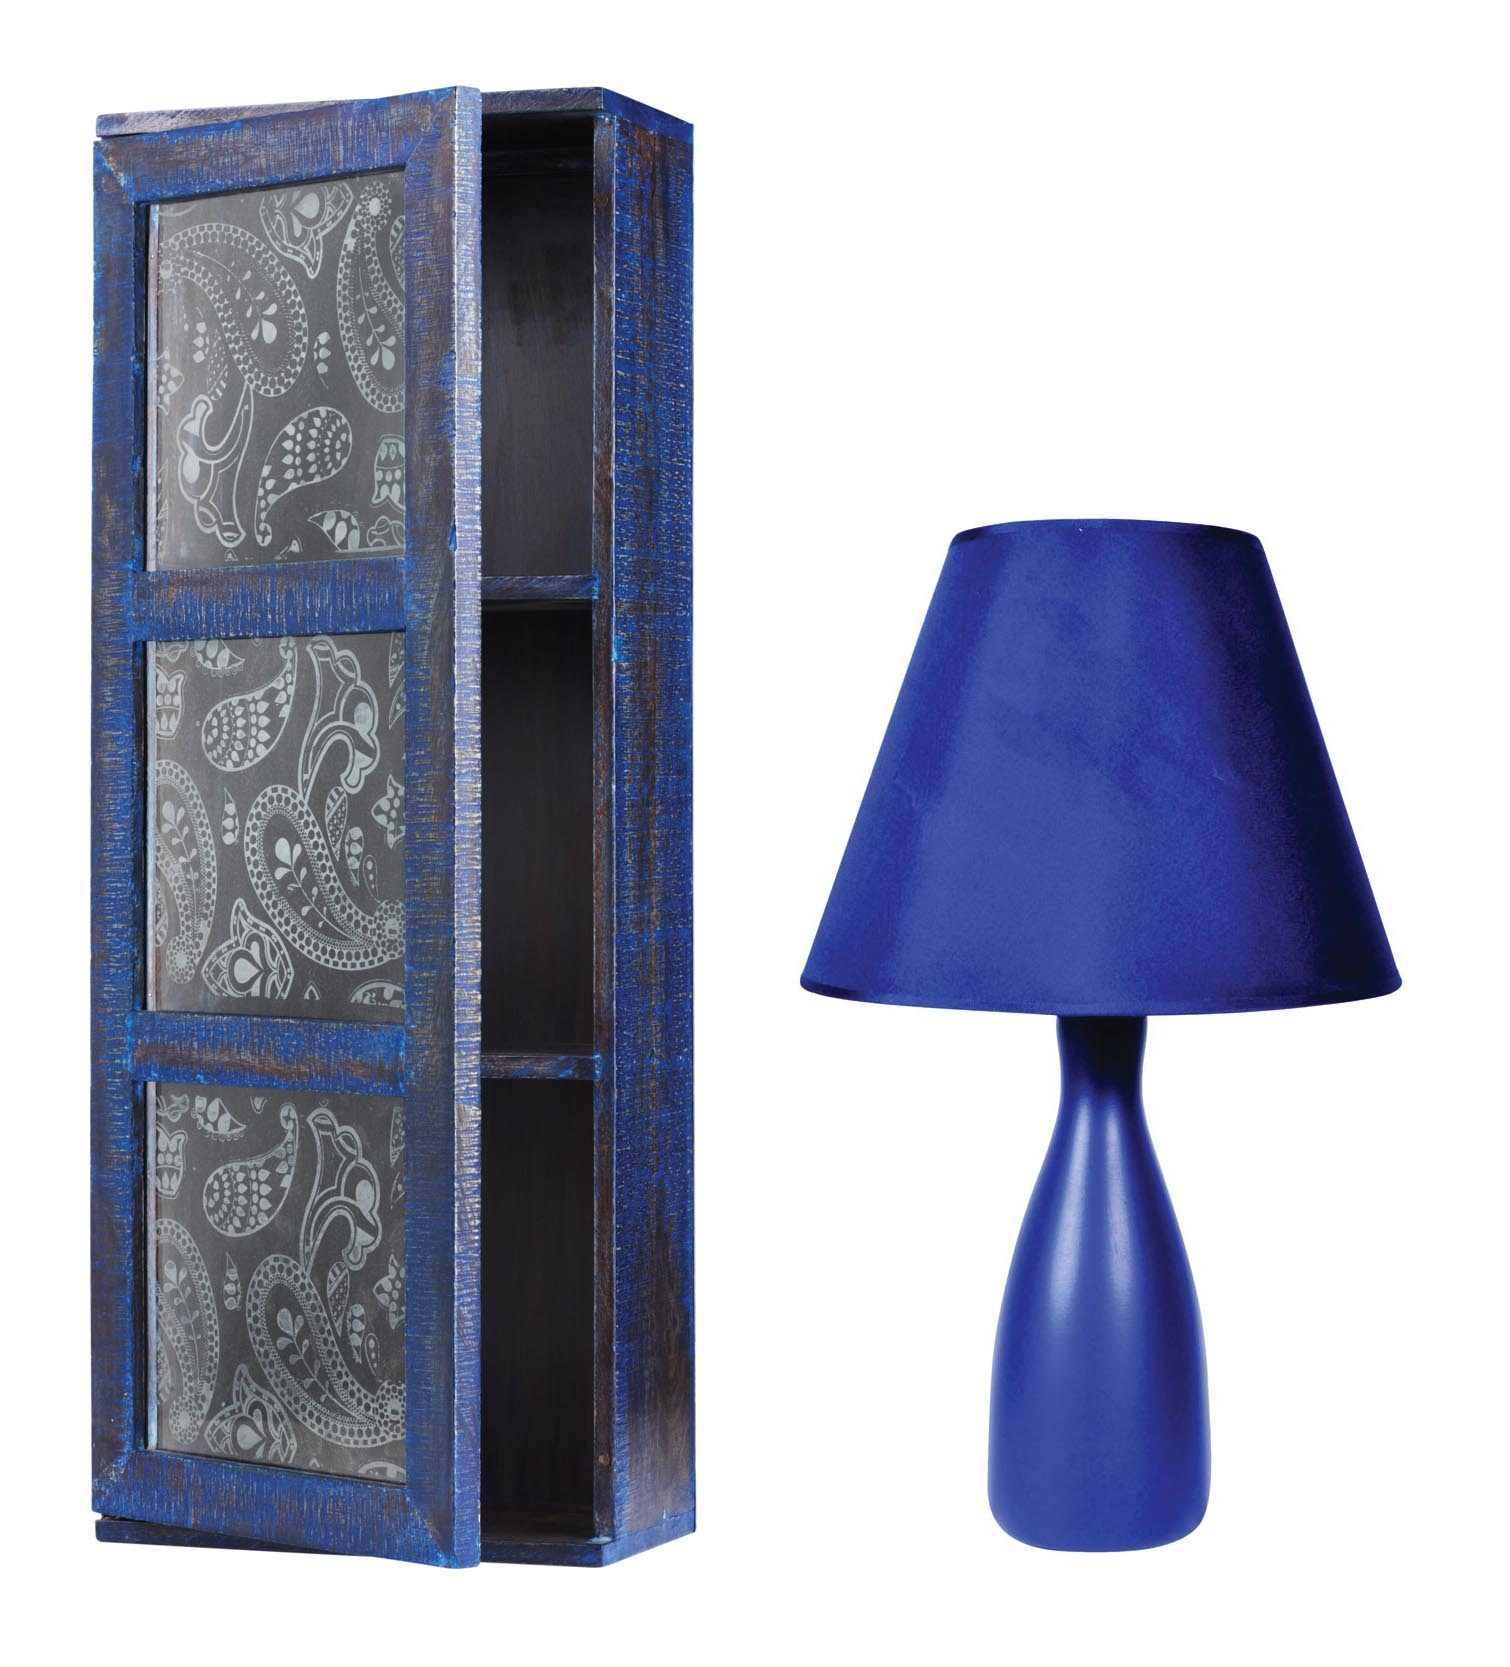 Wooden cabinet, 2593 and Lamp, €8, Heatons